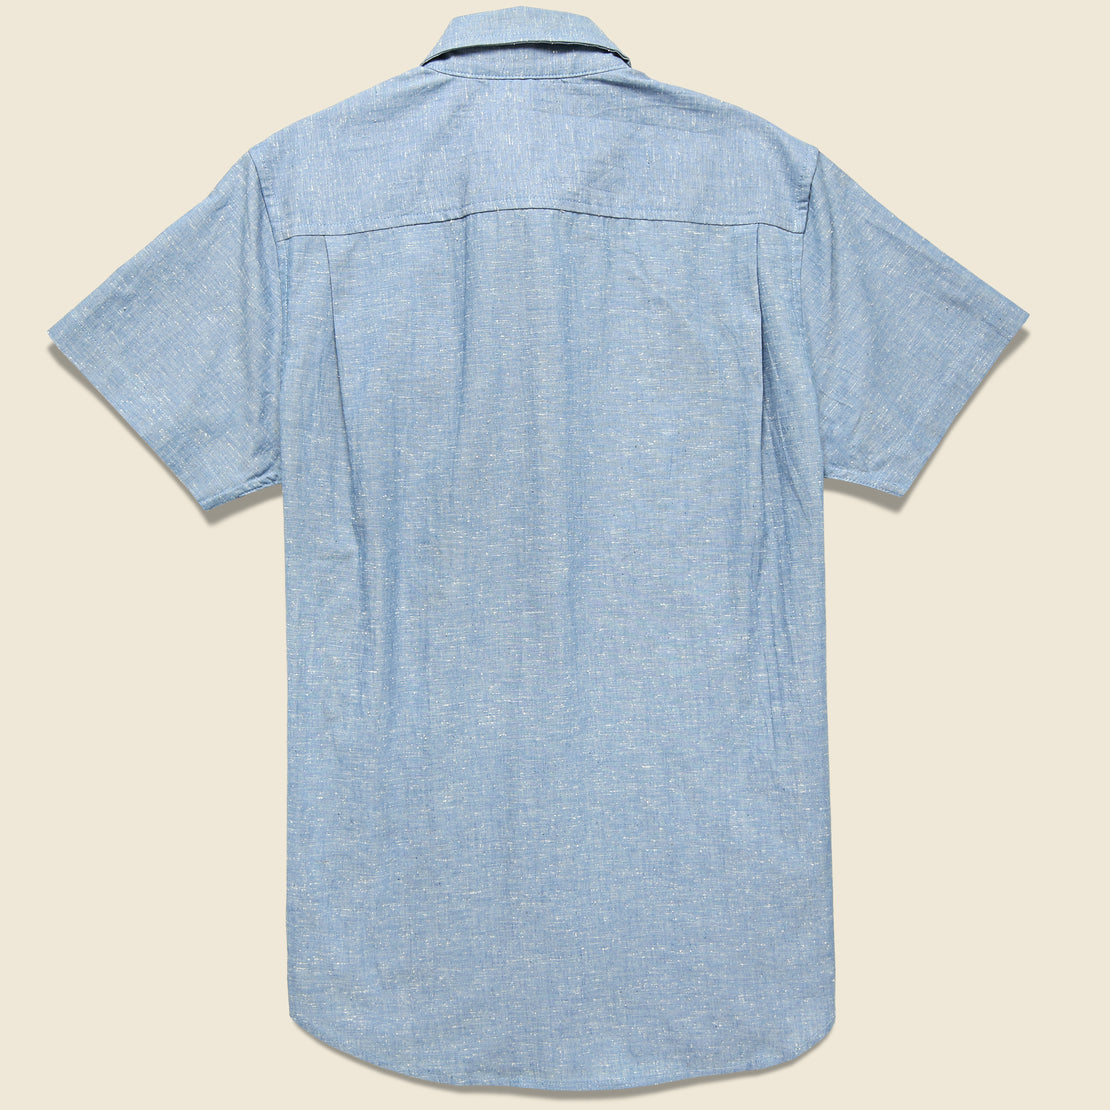 Marten Slub Chambray Shirt - Medium Indigo